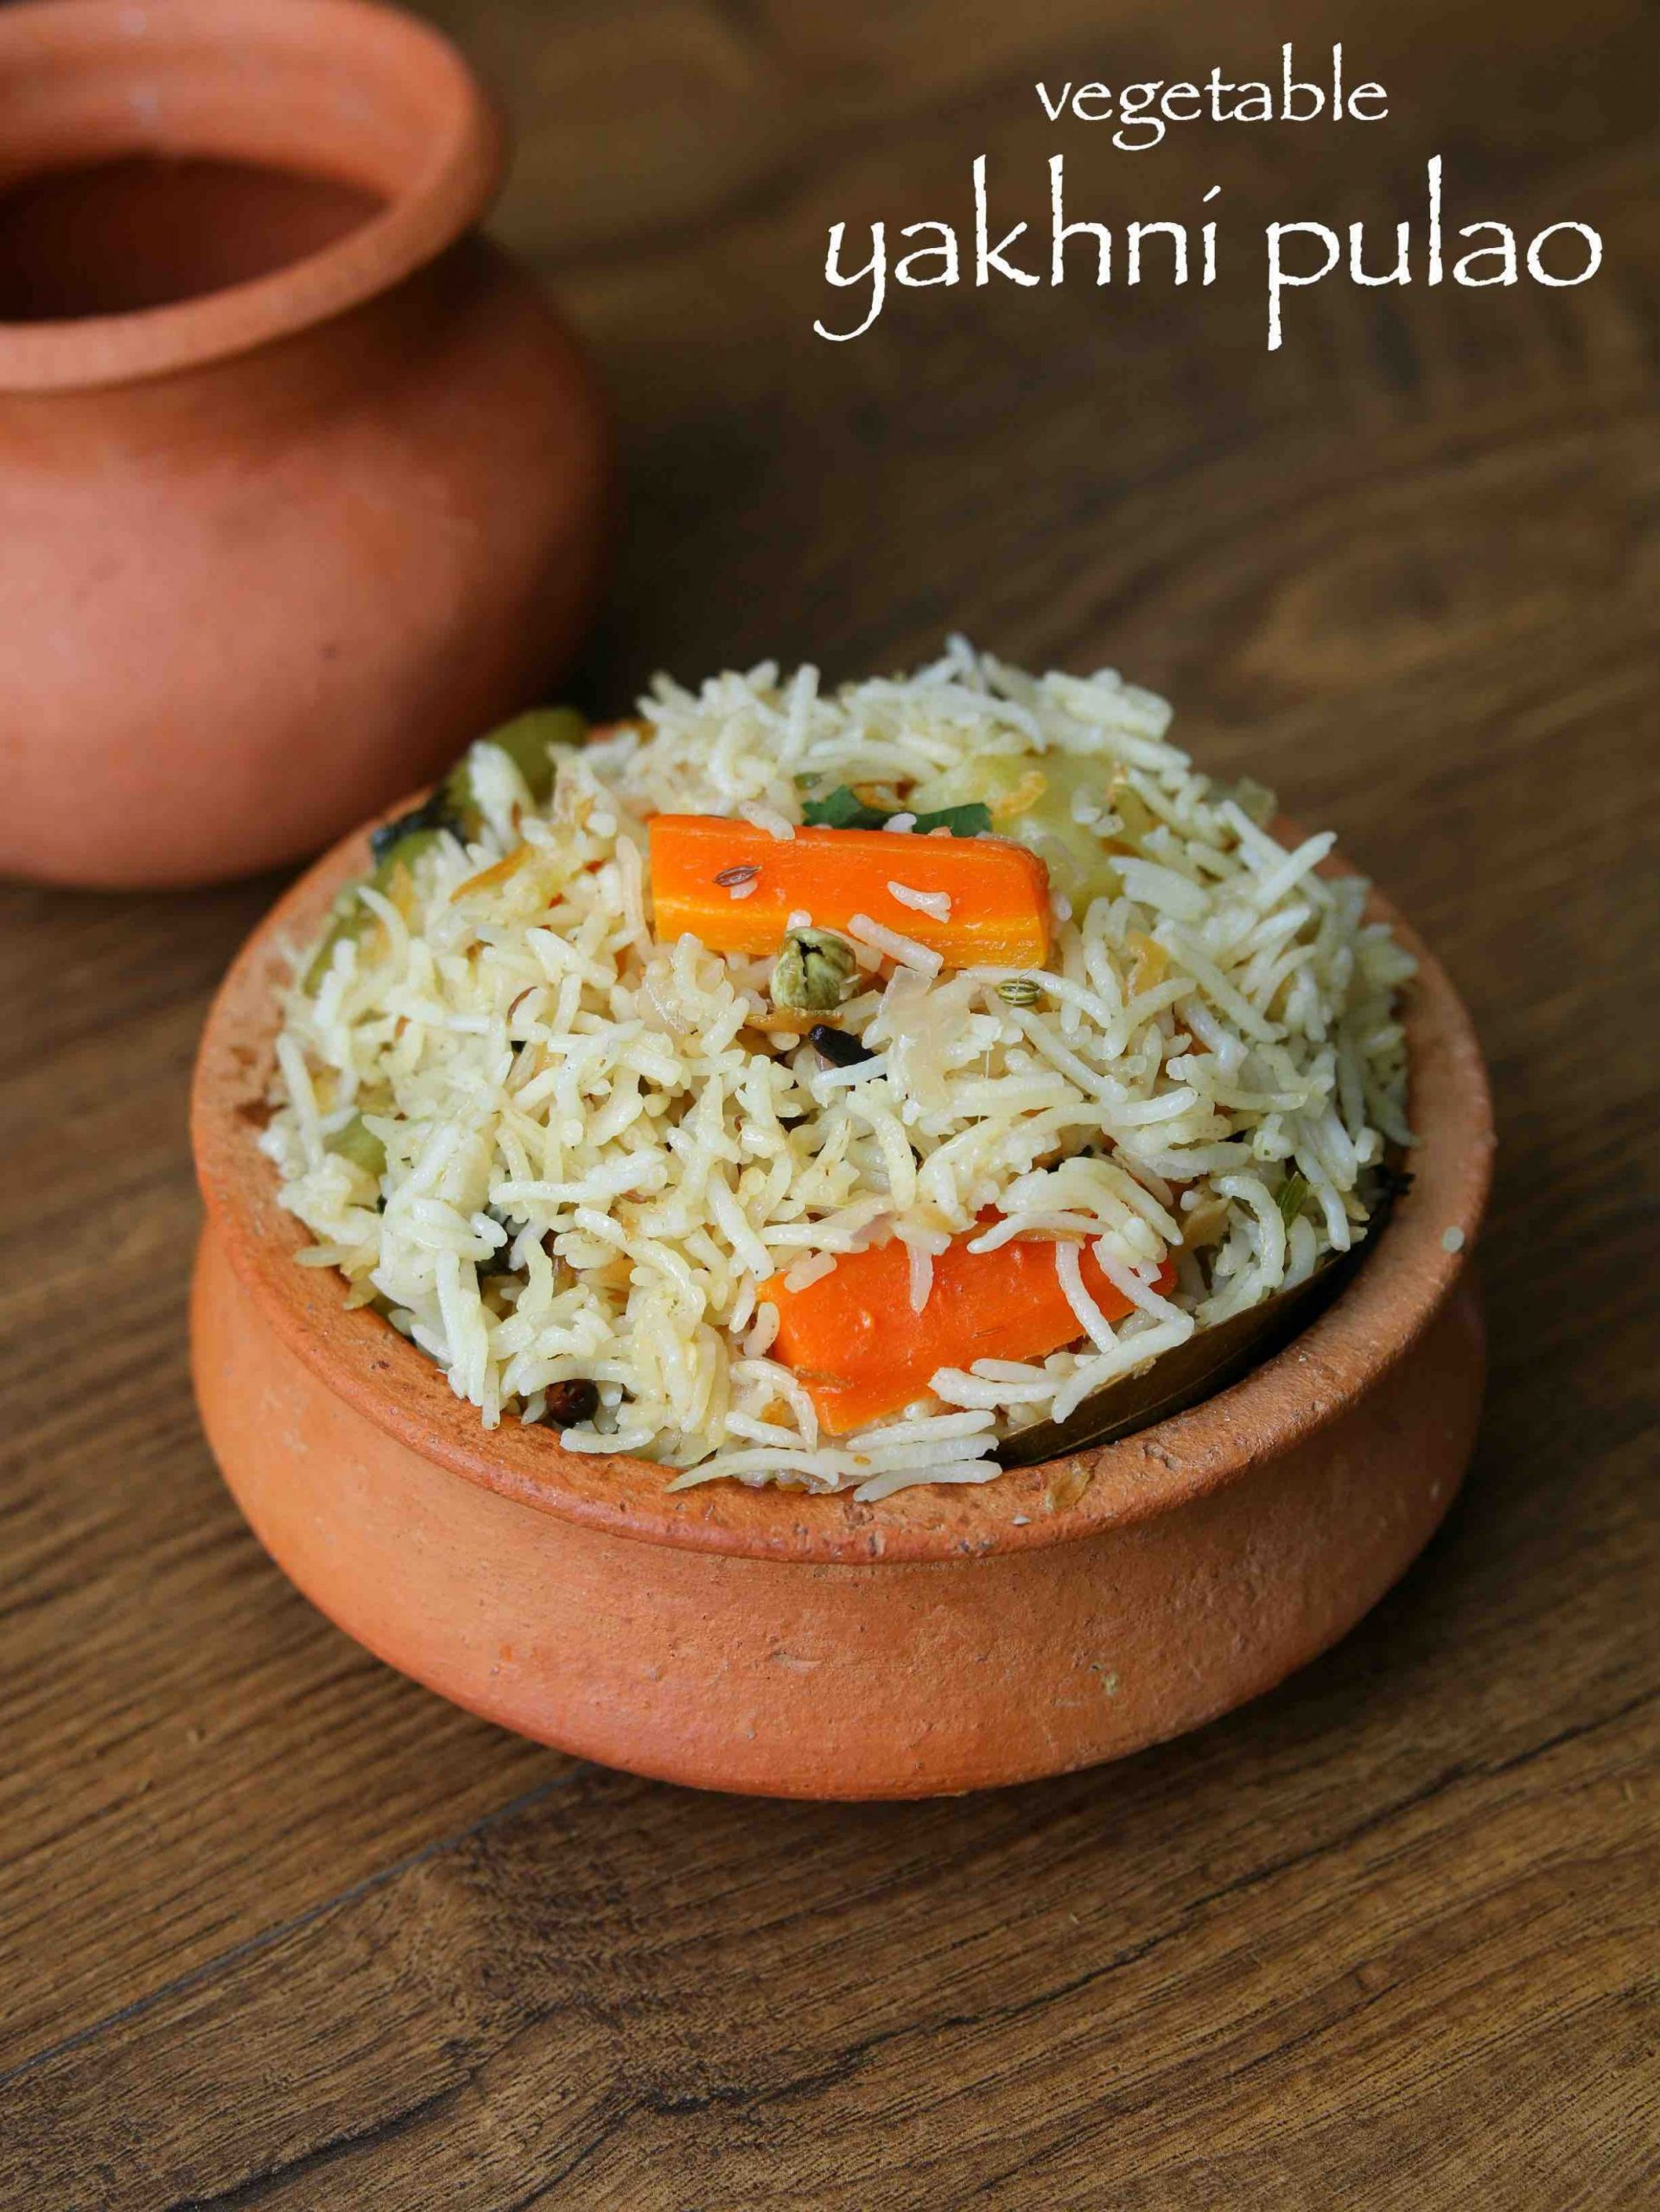 yakhni pulao recipe | vegetable yakhni pilaf | veg yakhni pulao